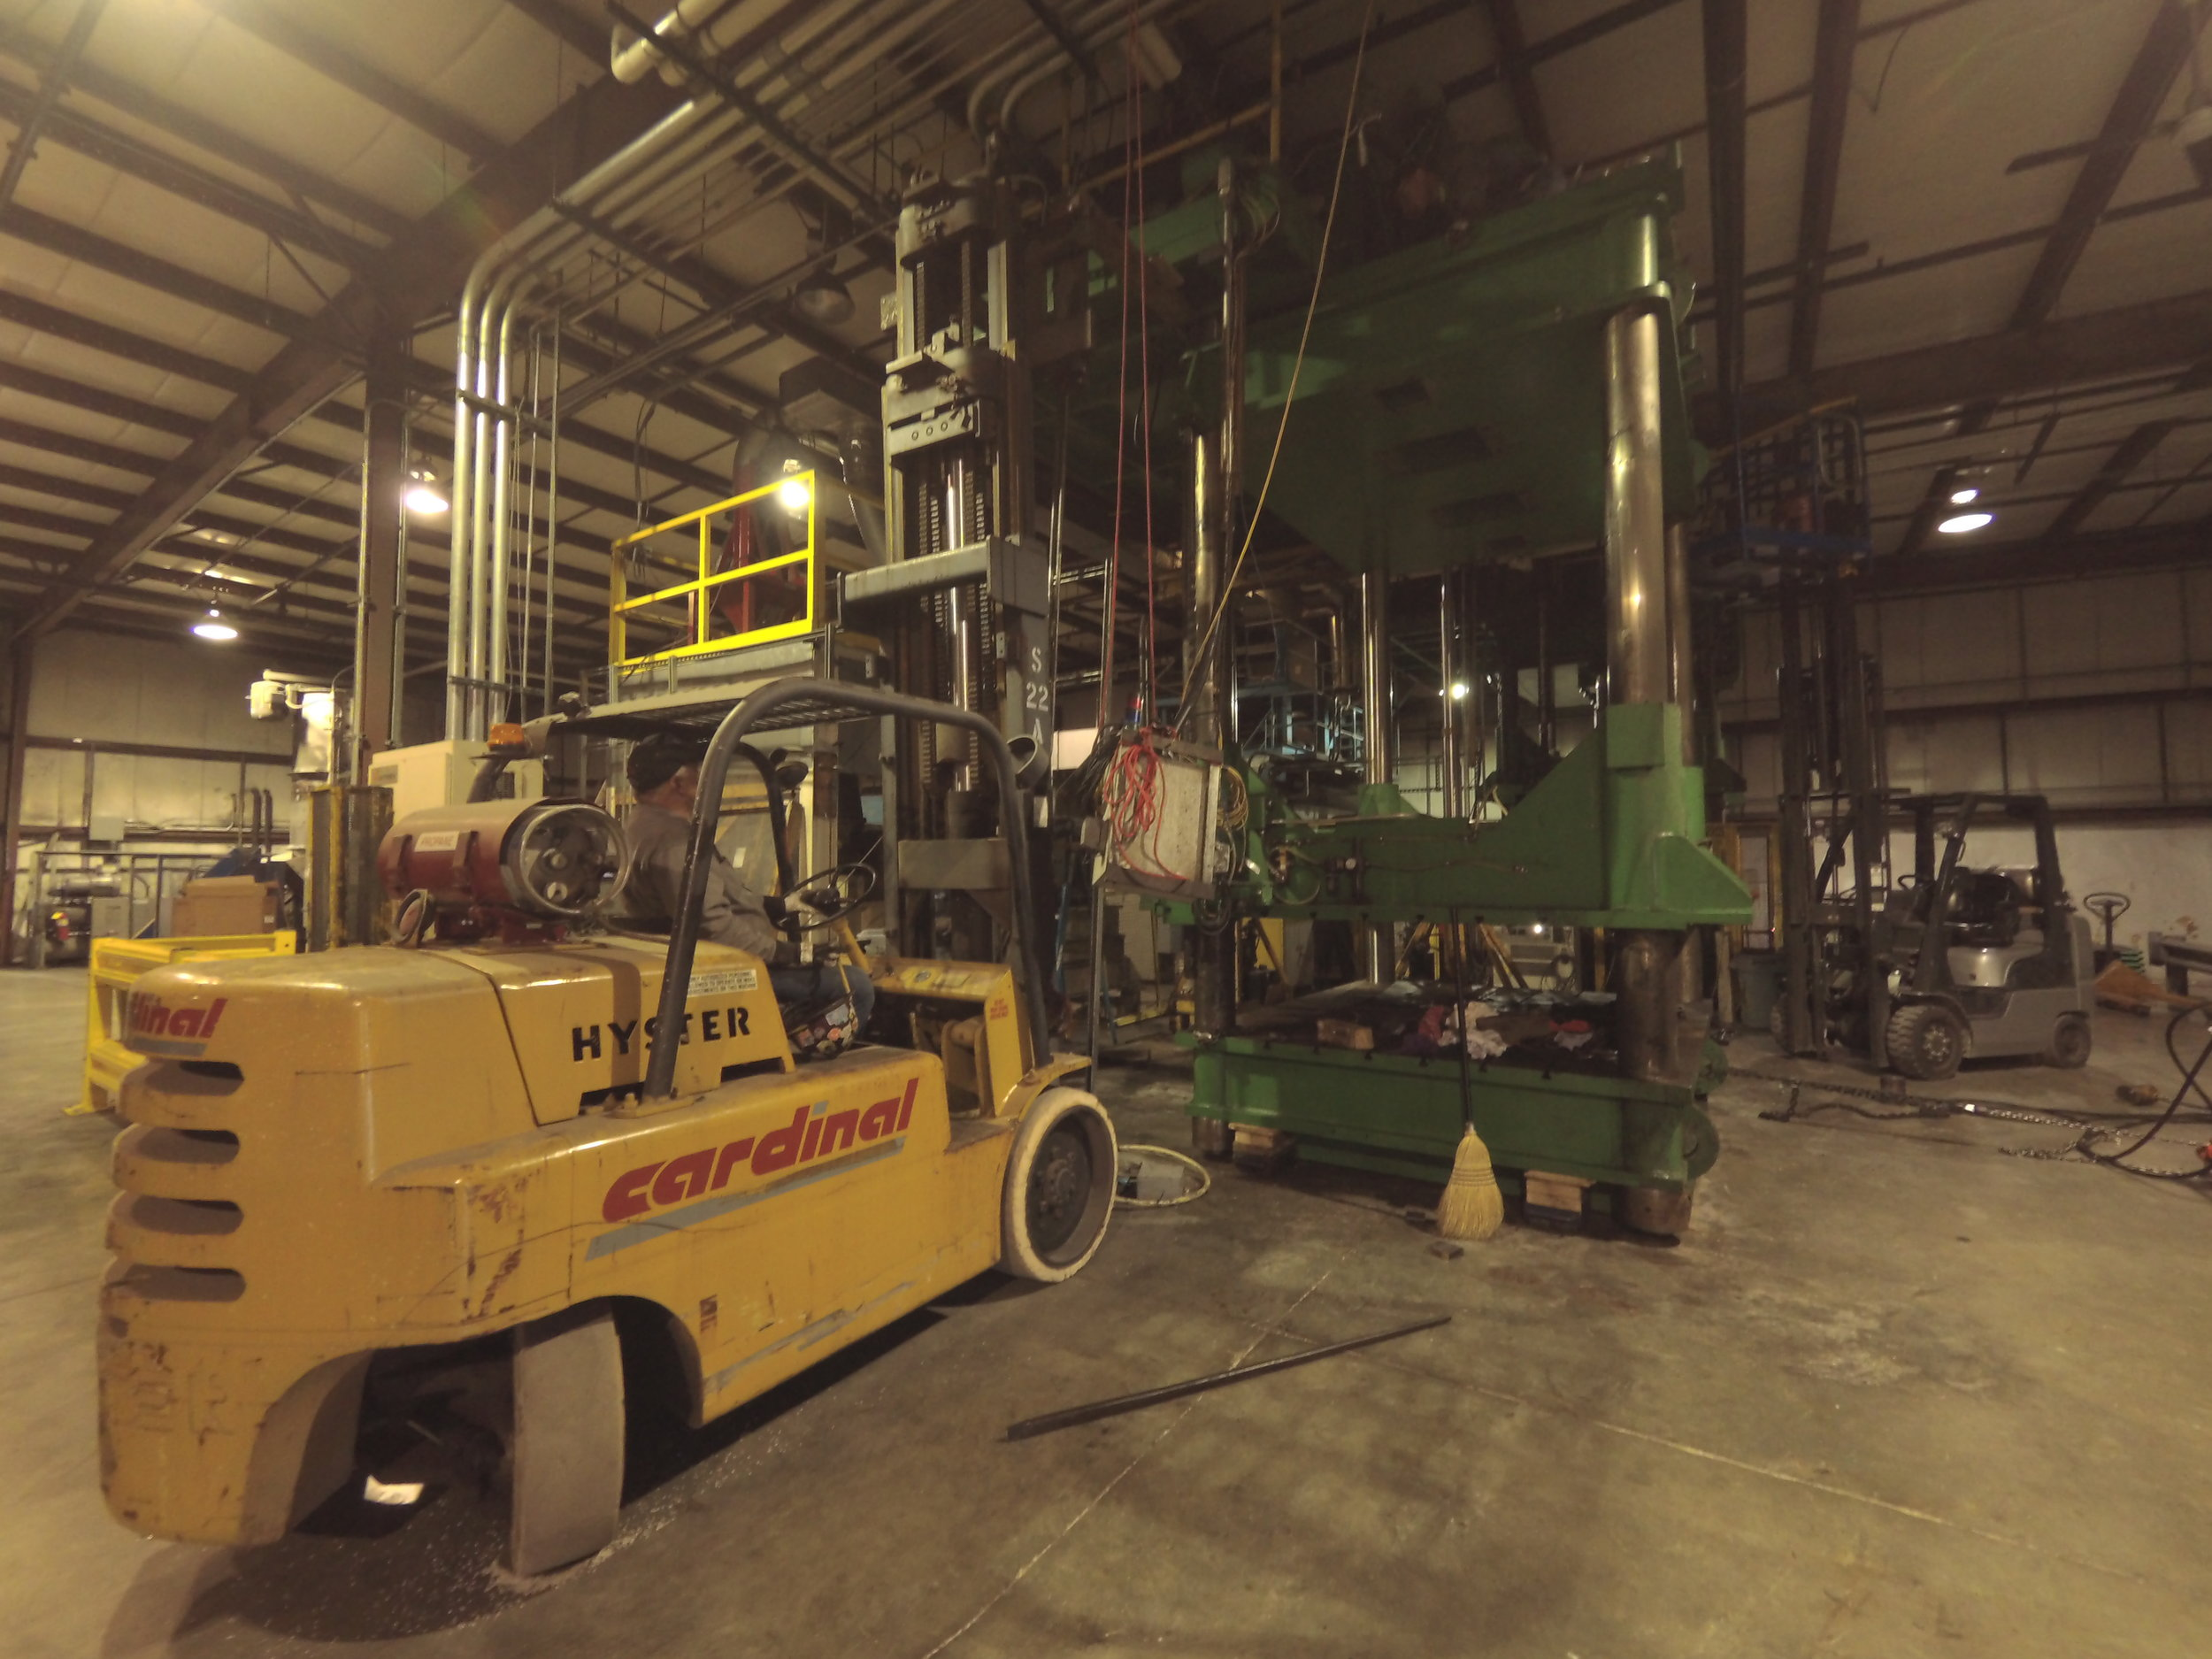 Perfect Pallet, 4/19/18 - We move and install presses, but did you know Cardinal Contracting also repairs presses? Four men, three forklifts, and a set of electric mini gantries disassembled, repaired, and re-stacked the press.